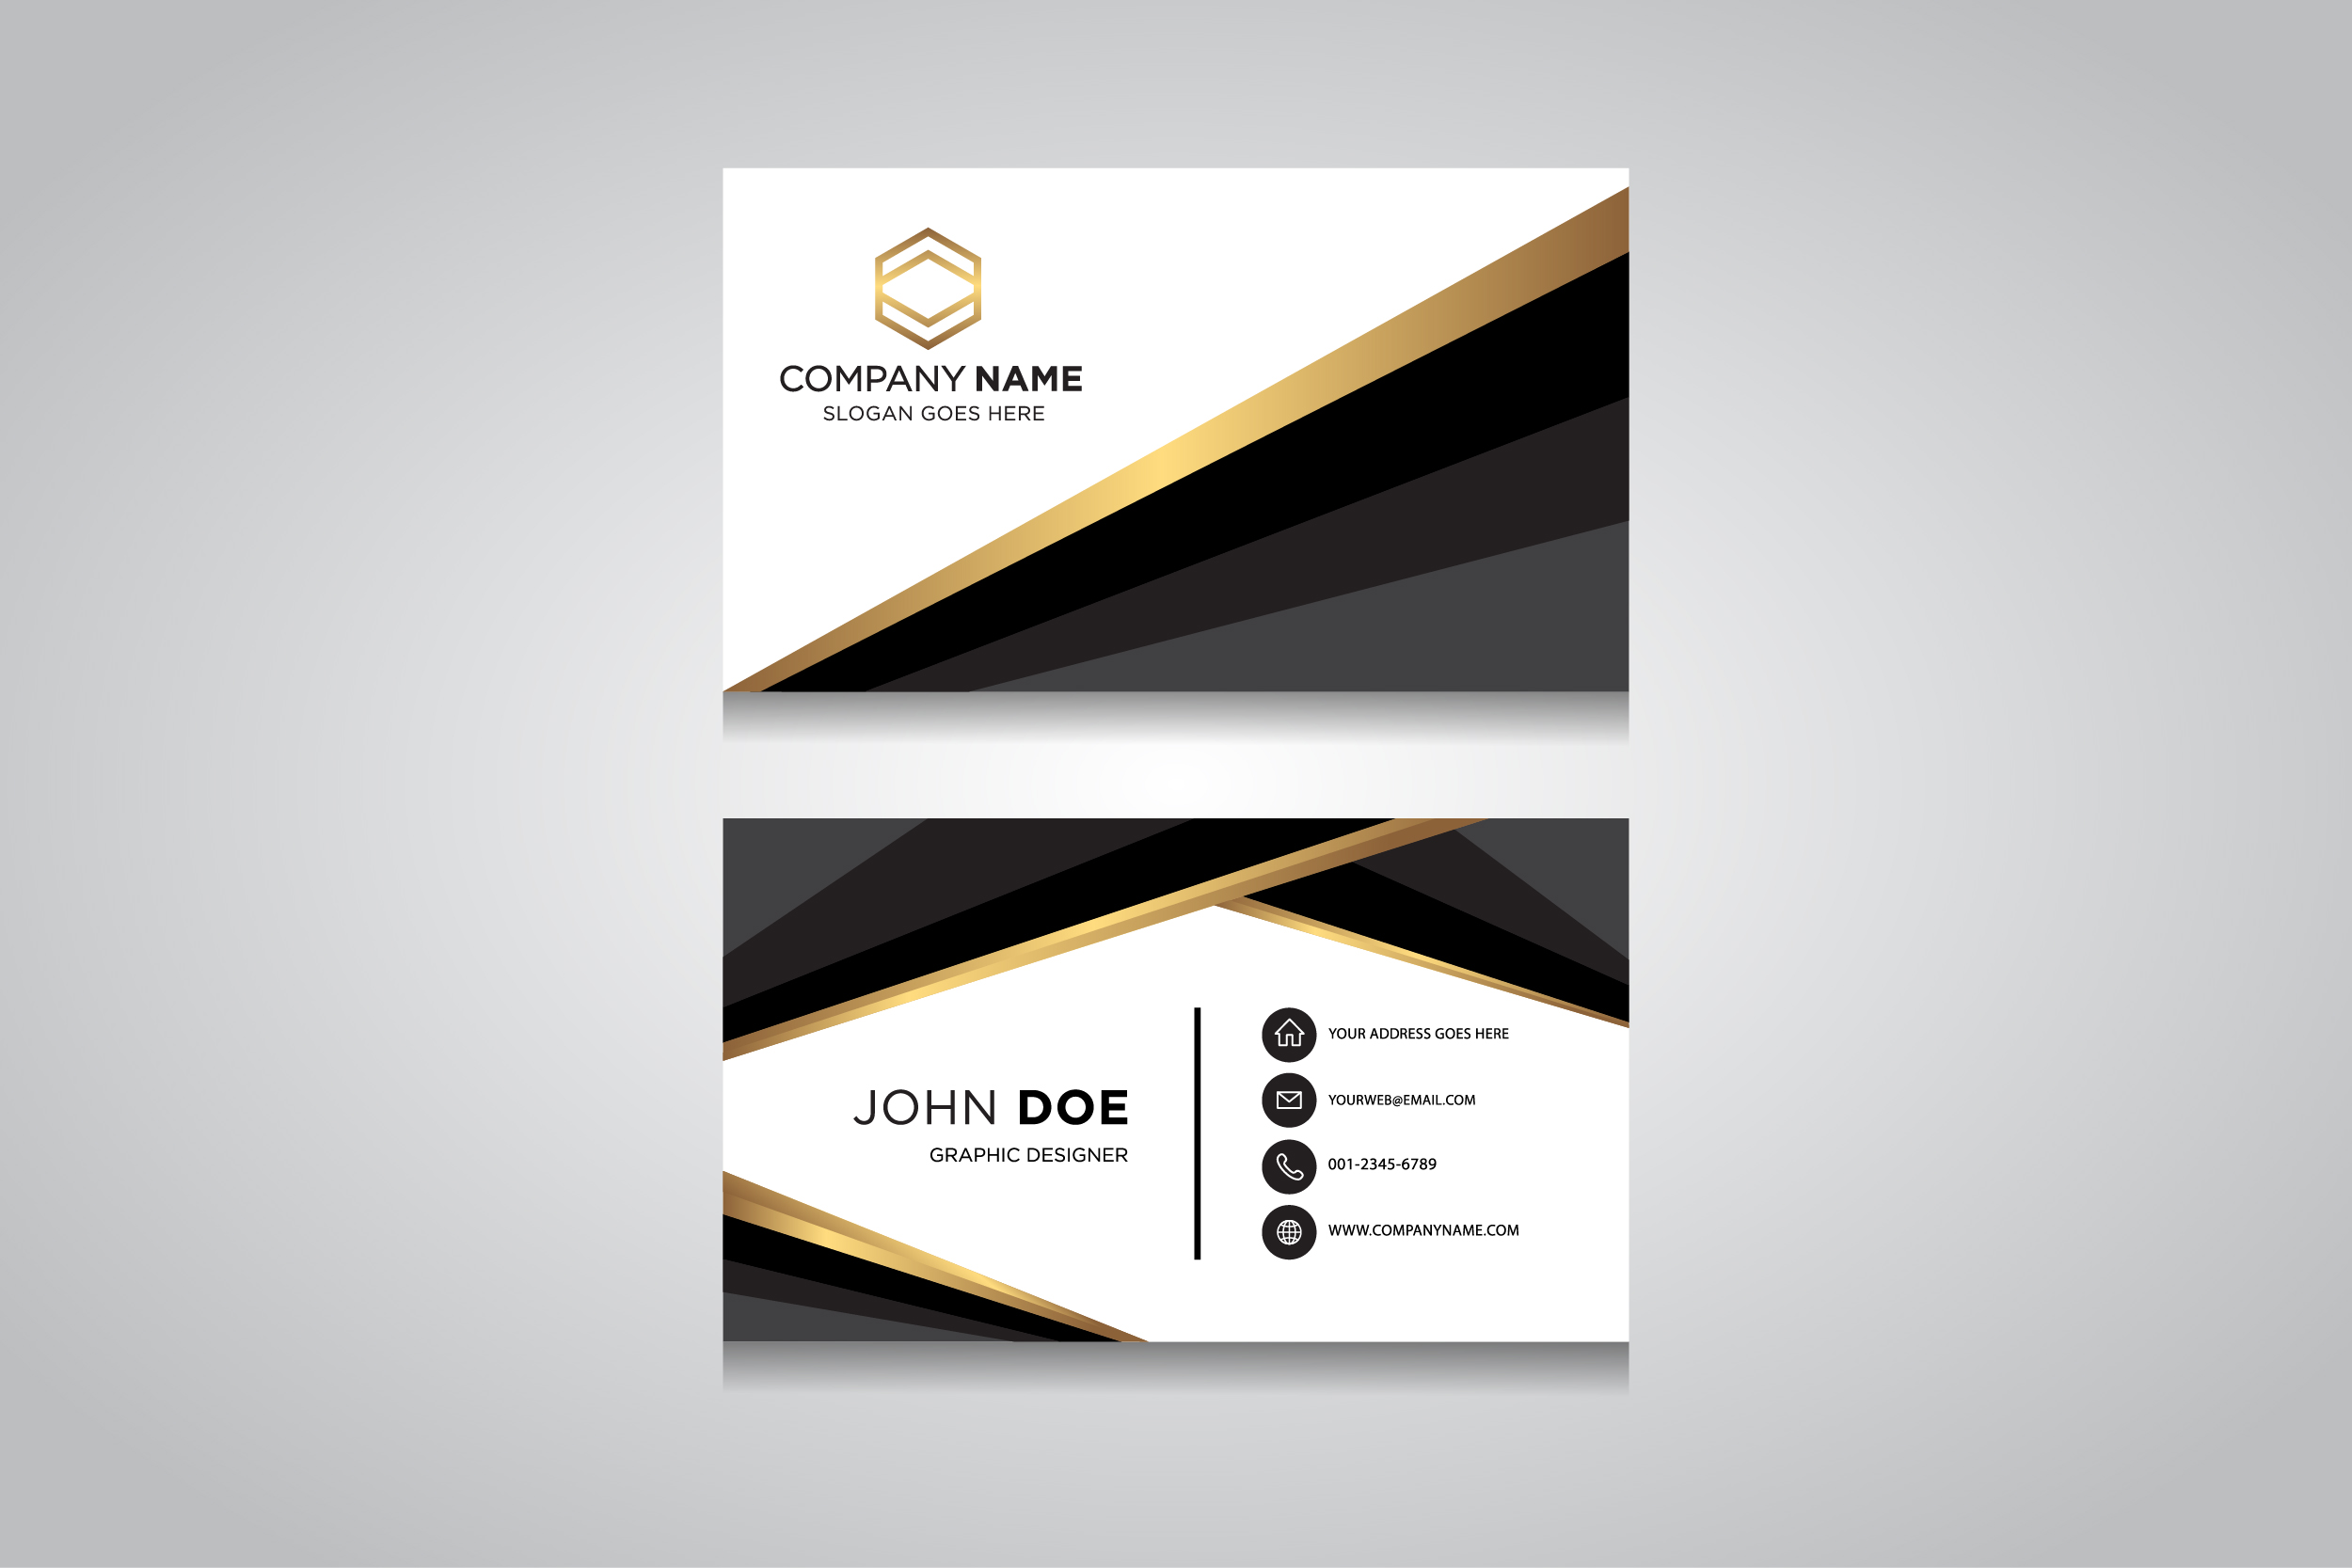 Creative and clean vector business card template creative and clean vector business card template example image 1 flashek Image collections